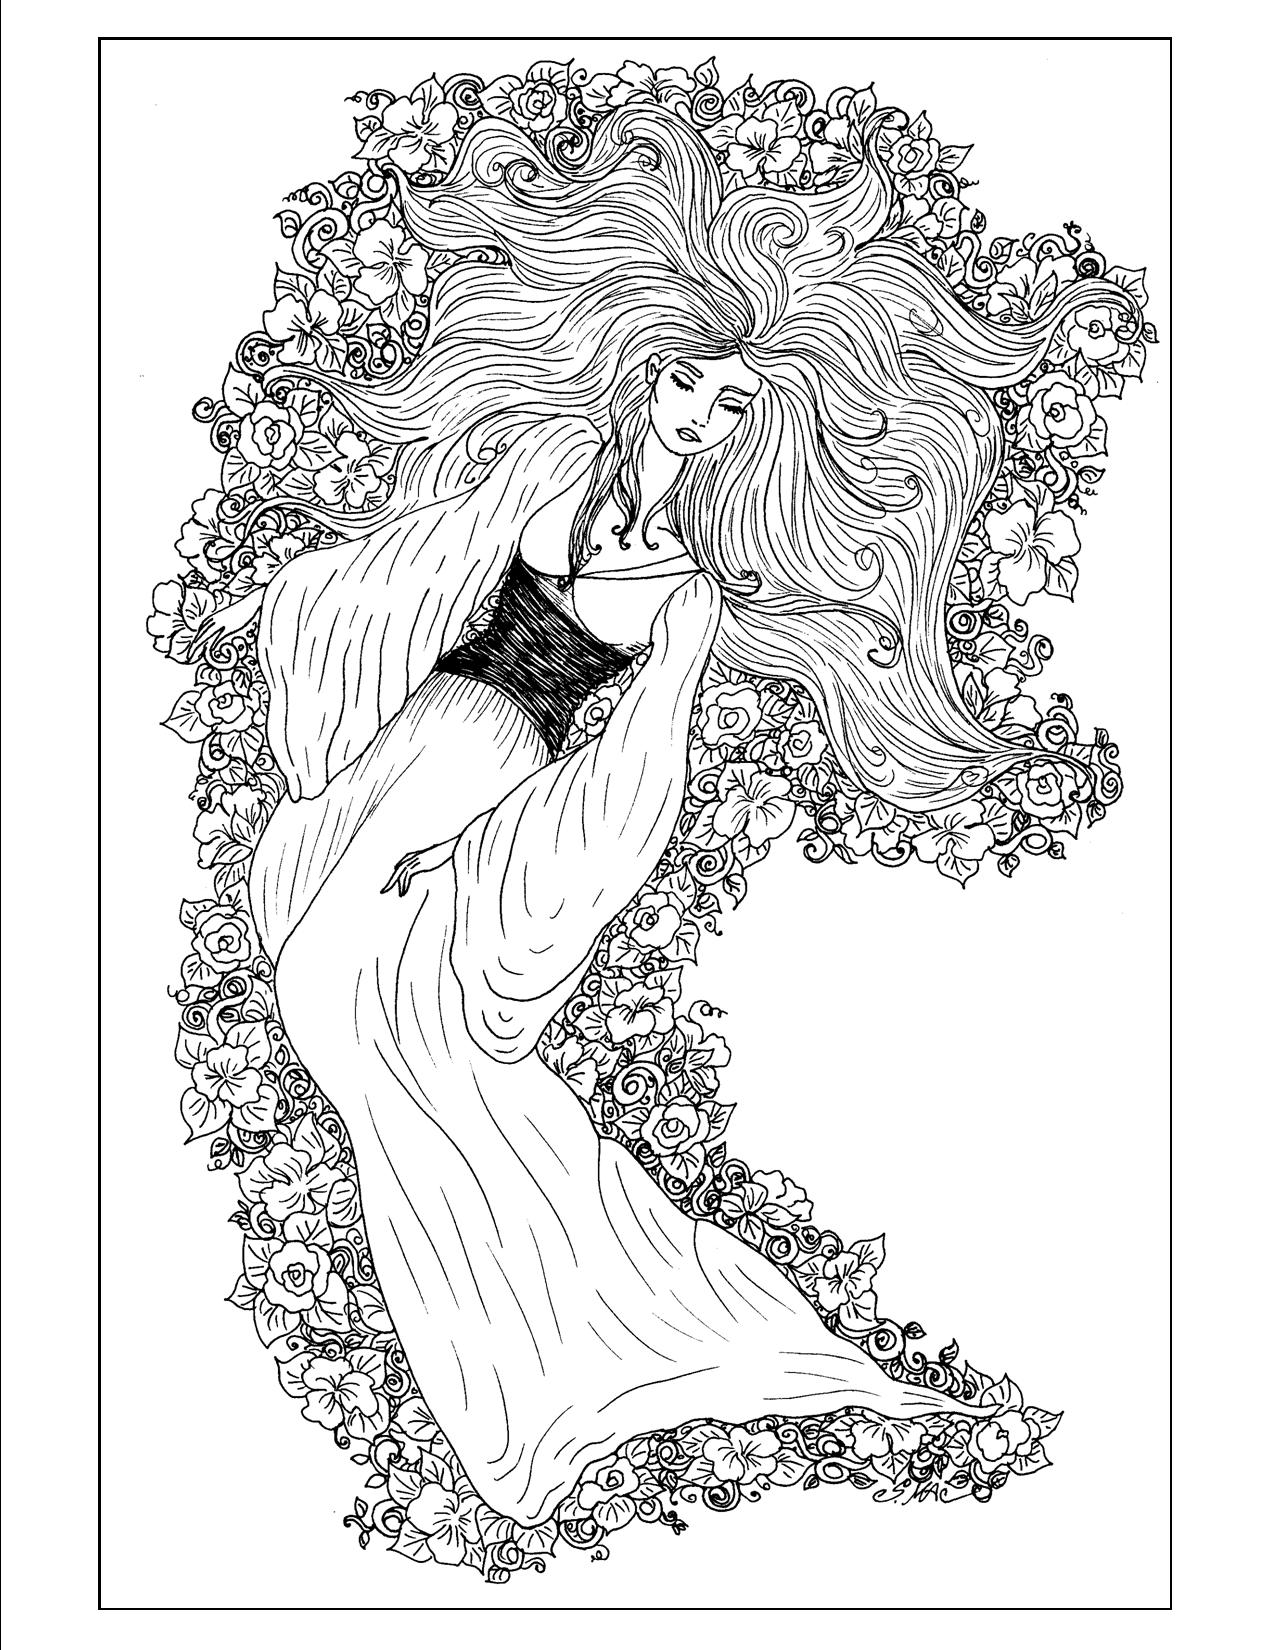 S macs coloring pages for all ages com - Art Nouveau Coloring Pages S Mac S Place To Be